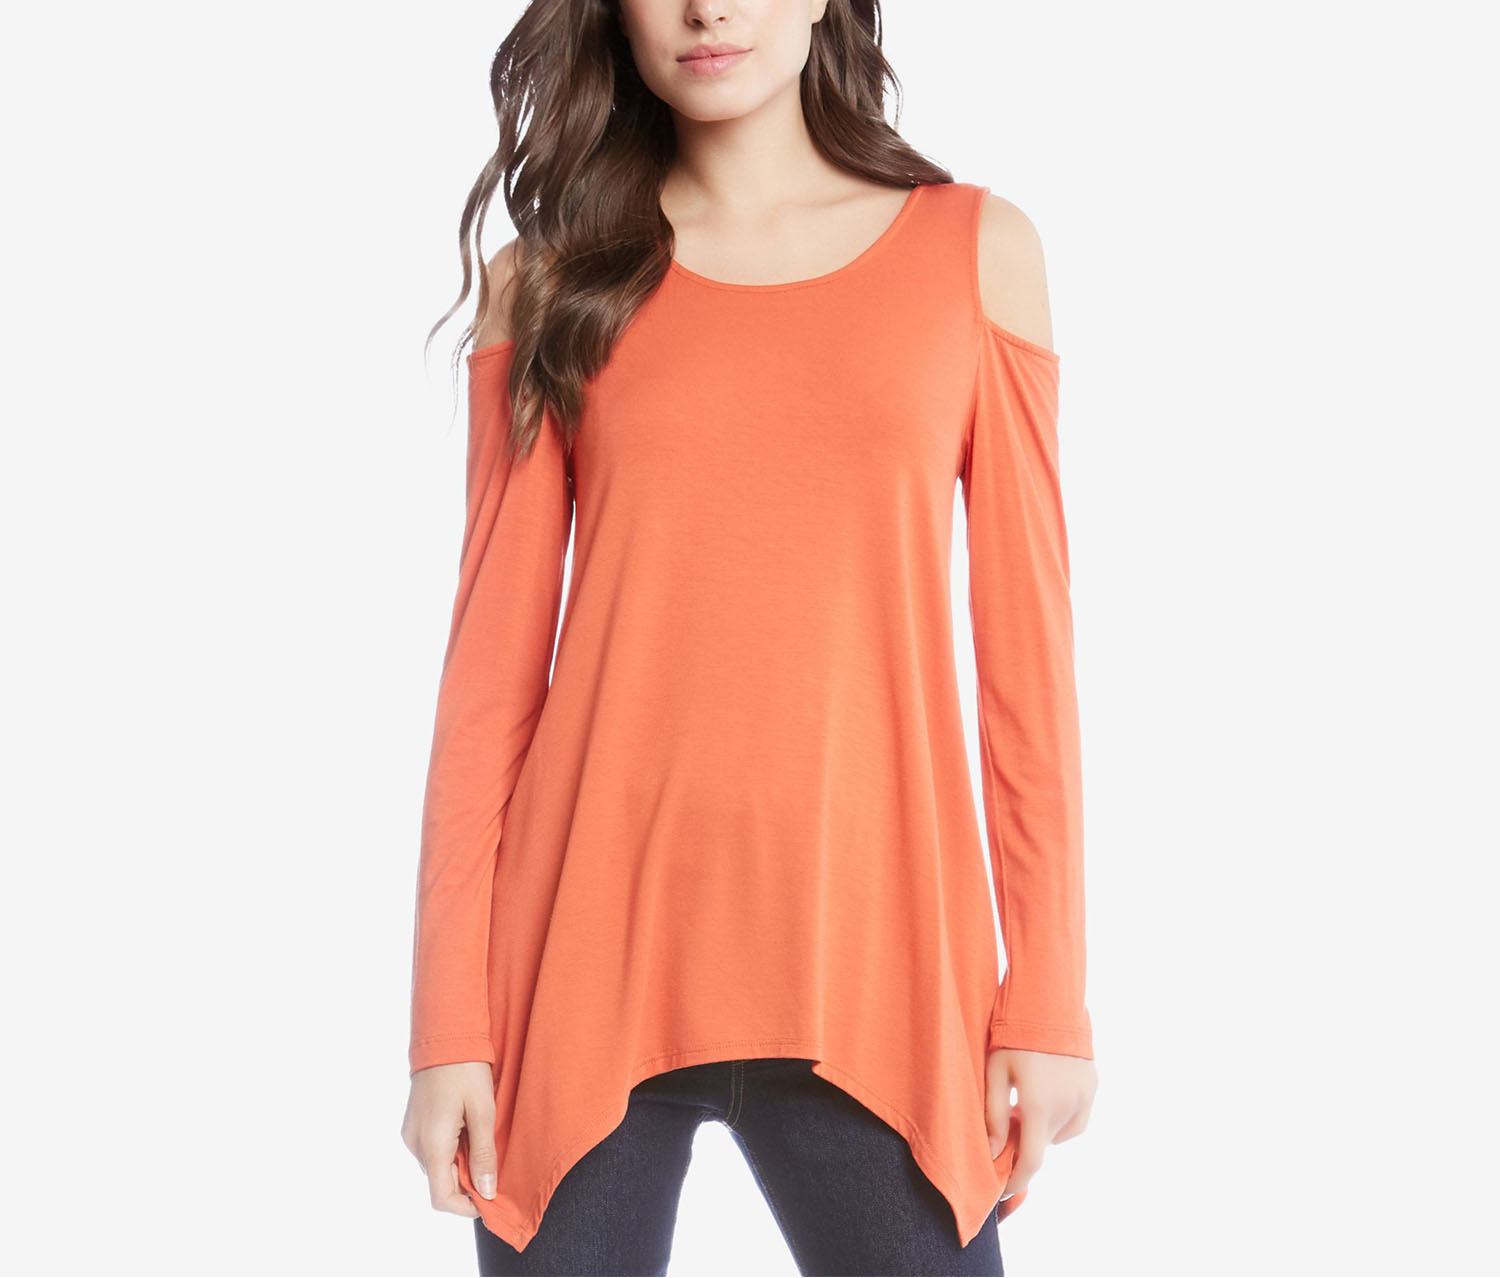 Karen Kane Women's Top, Orange